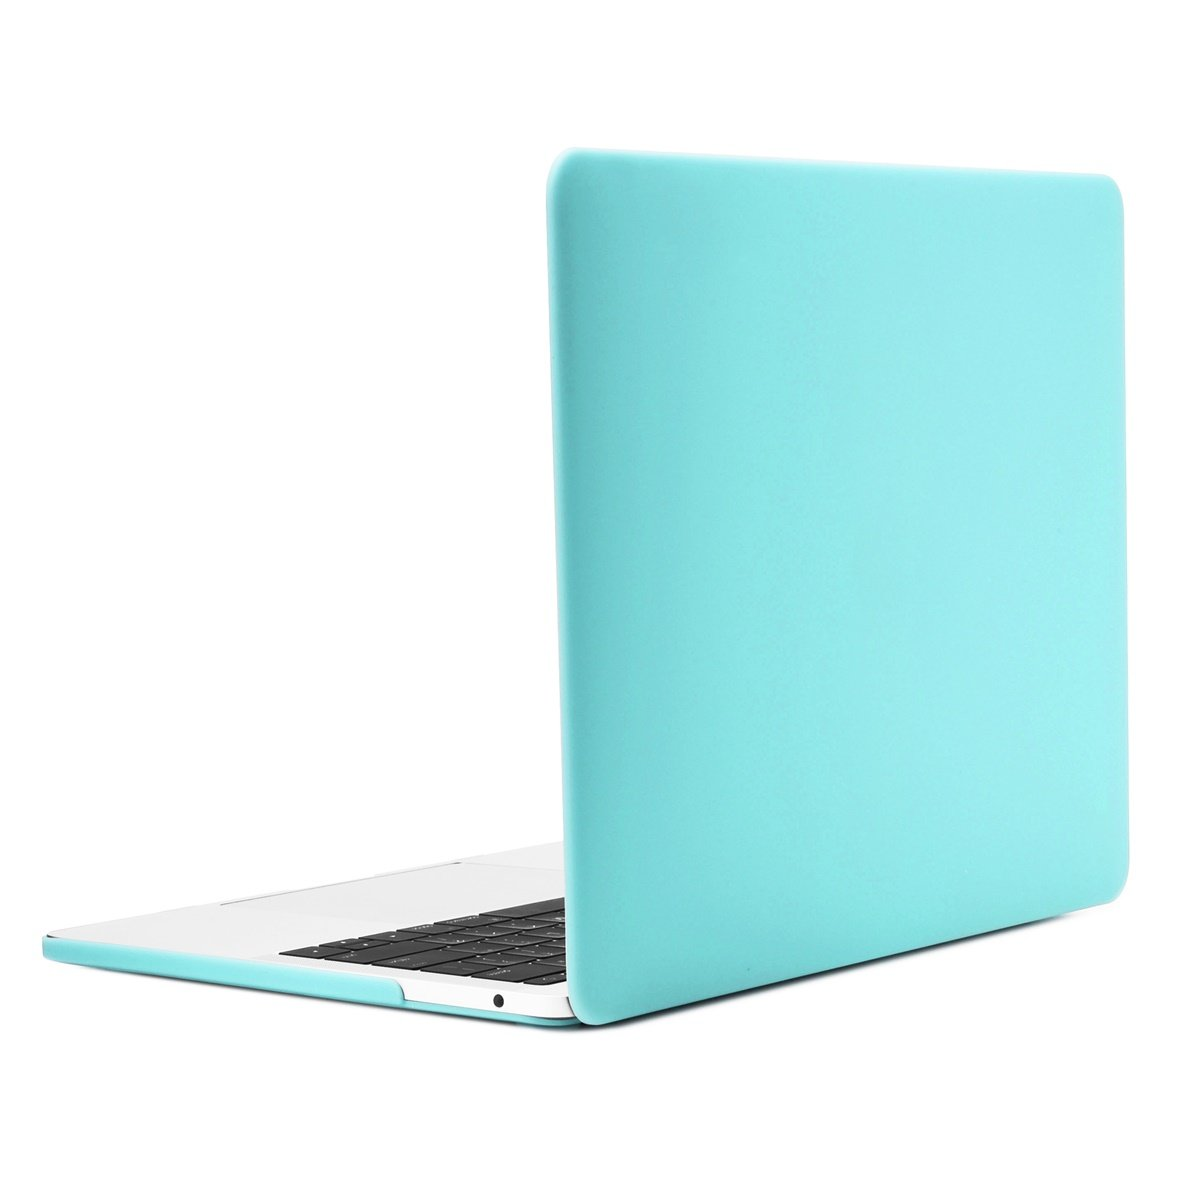 TOP CASE - Essential 2 in 1 Rubberized Hard Case + Leather Sleeve Bag Compatiable with MacBook Pro 13-inch A1989,A1706 with Touch Bar/A1708 Without Touch Bar(Release 2017,2016,2018)- Hot Blue by TOP CASE (Image #5)